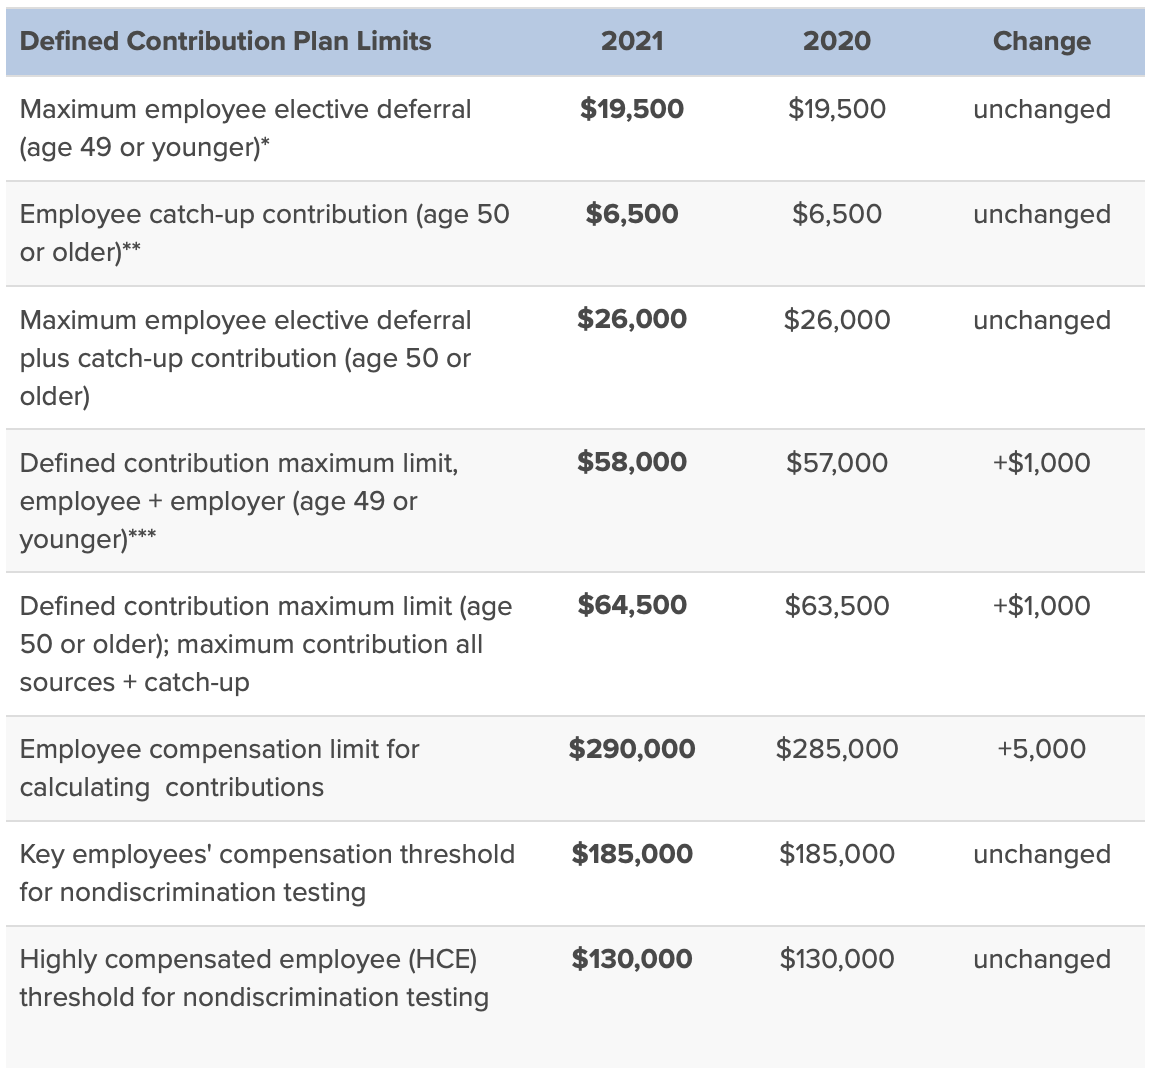 401k maximum contribution limit chart for employee and employer for 2021